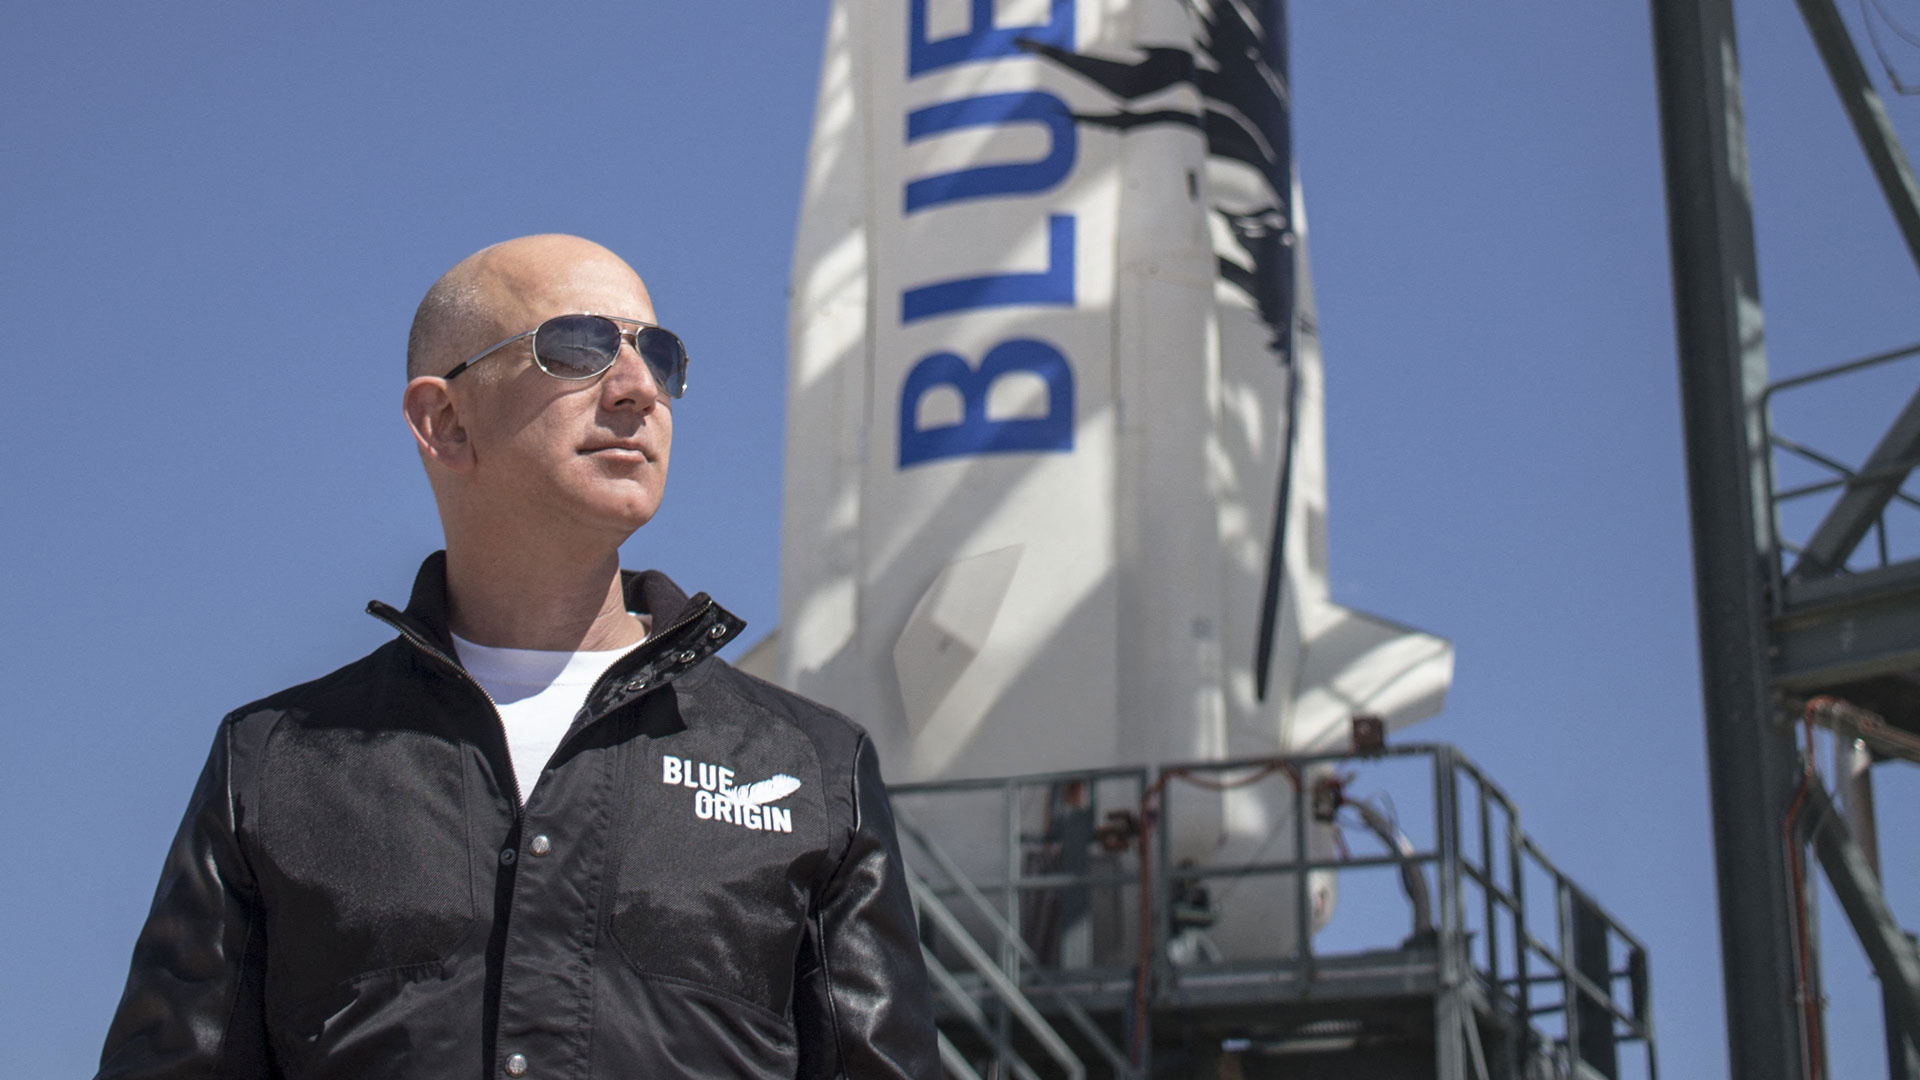 Watch live: Jeff Bezos travels to space with Blue Origin launch